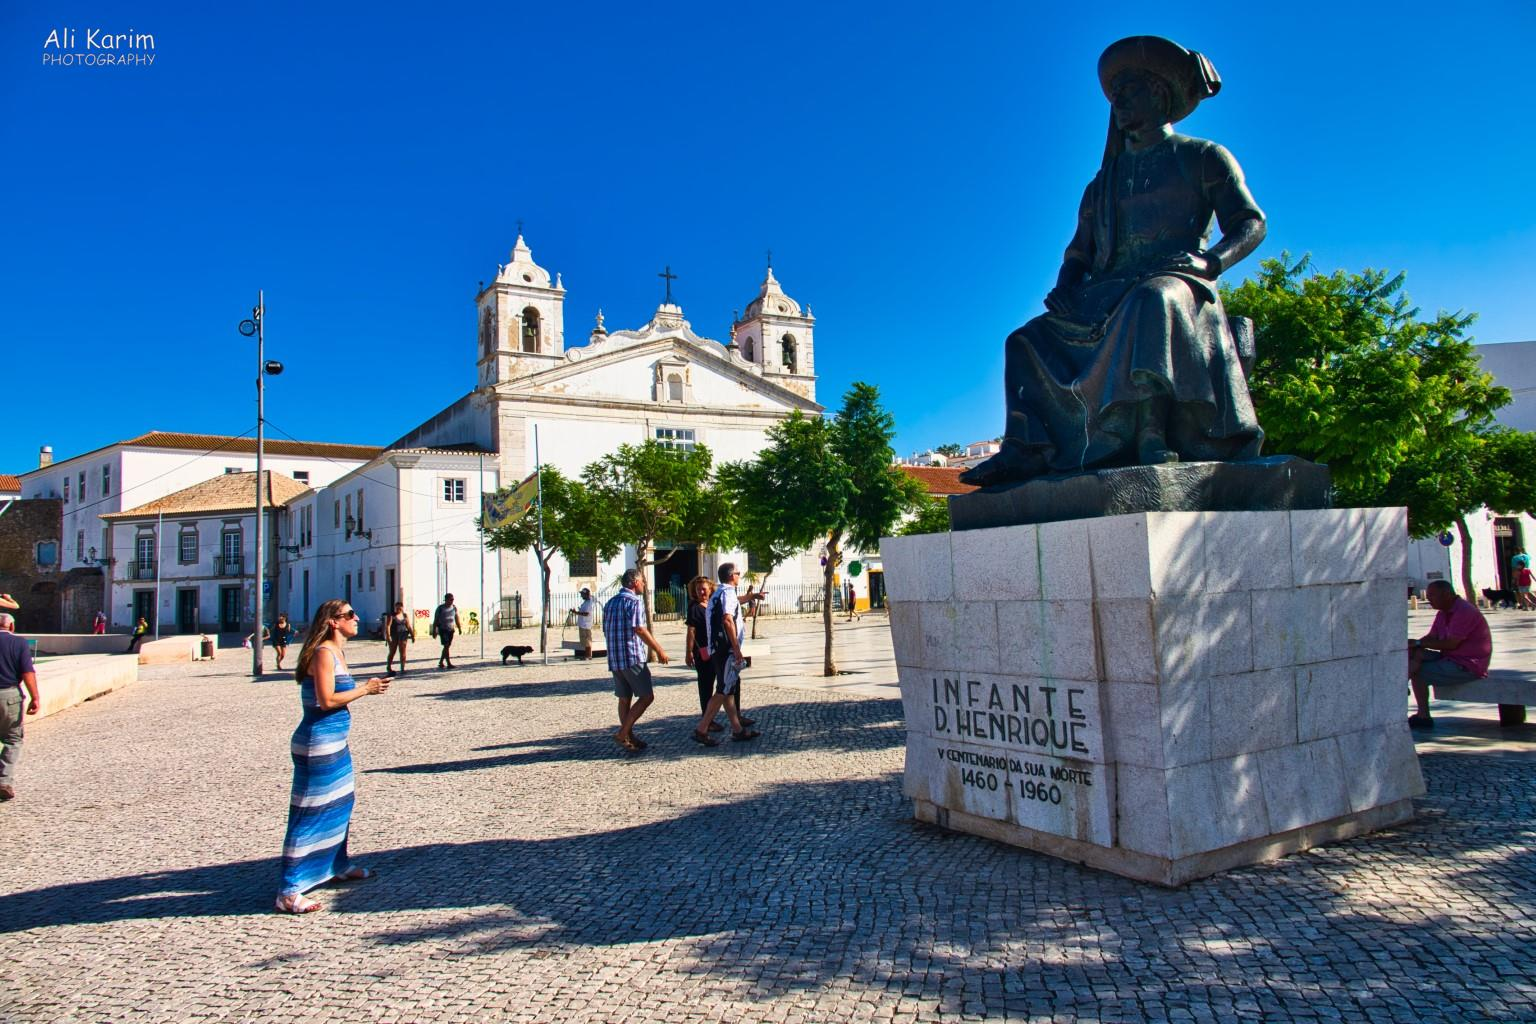 Algarve, Portugal Henry the Navigator statue in the main square in downtown Lagos, complete with cathedral